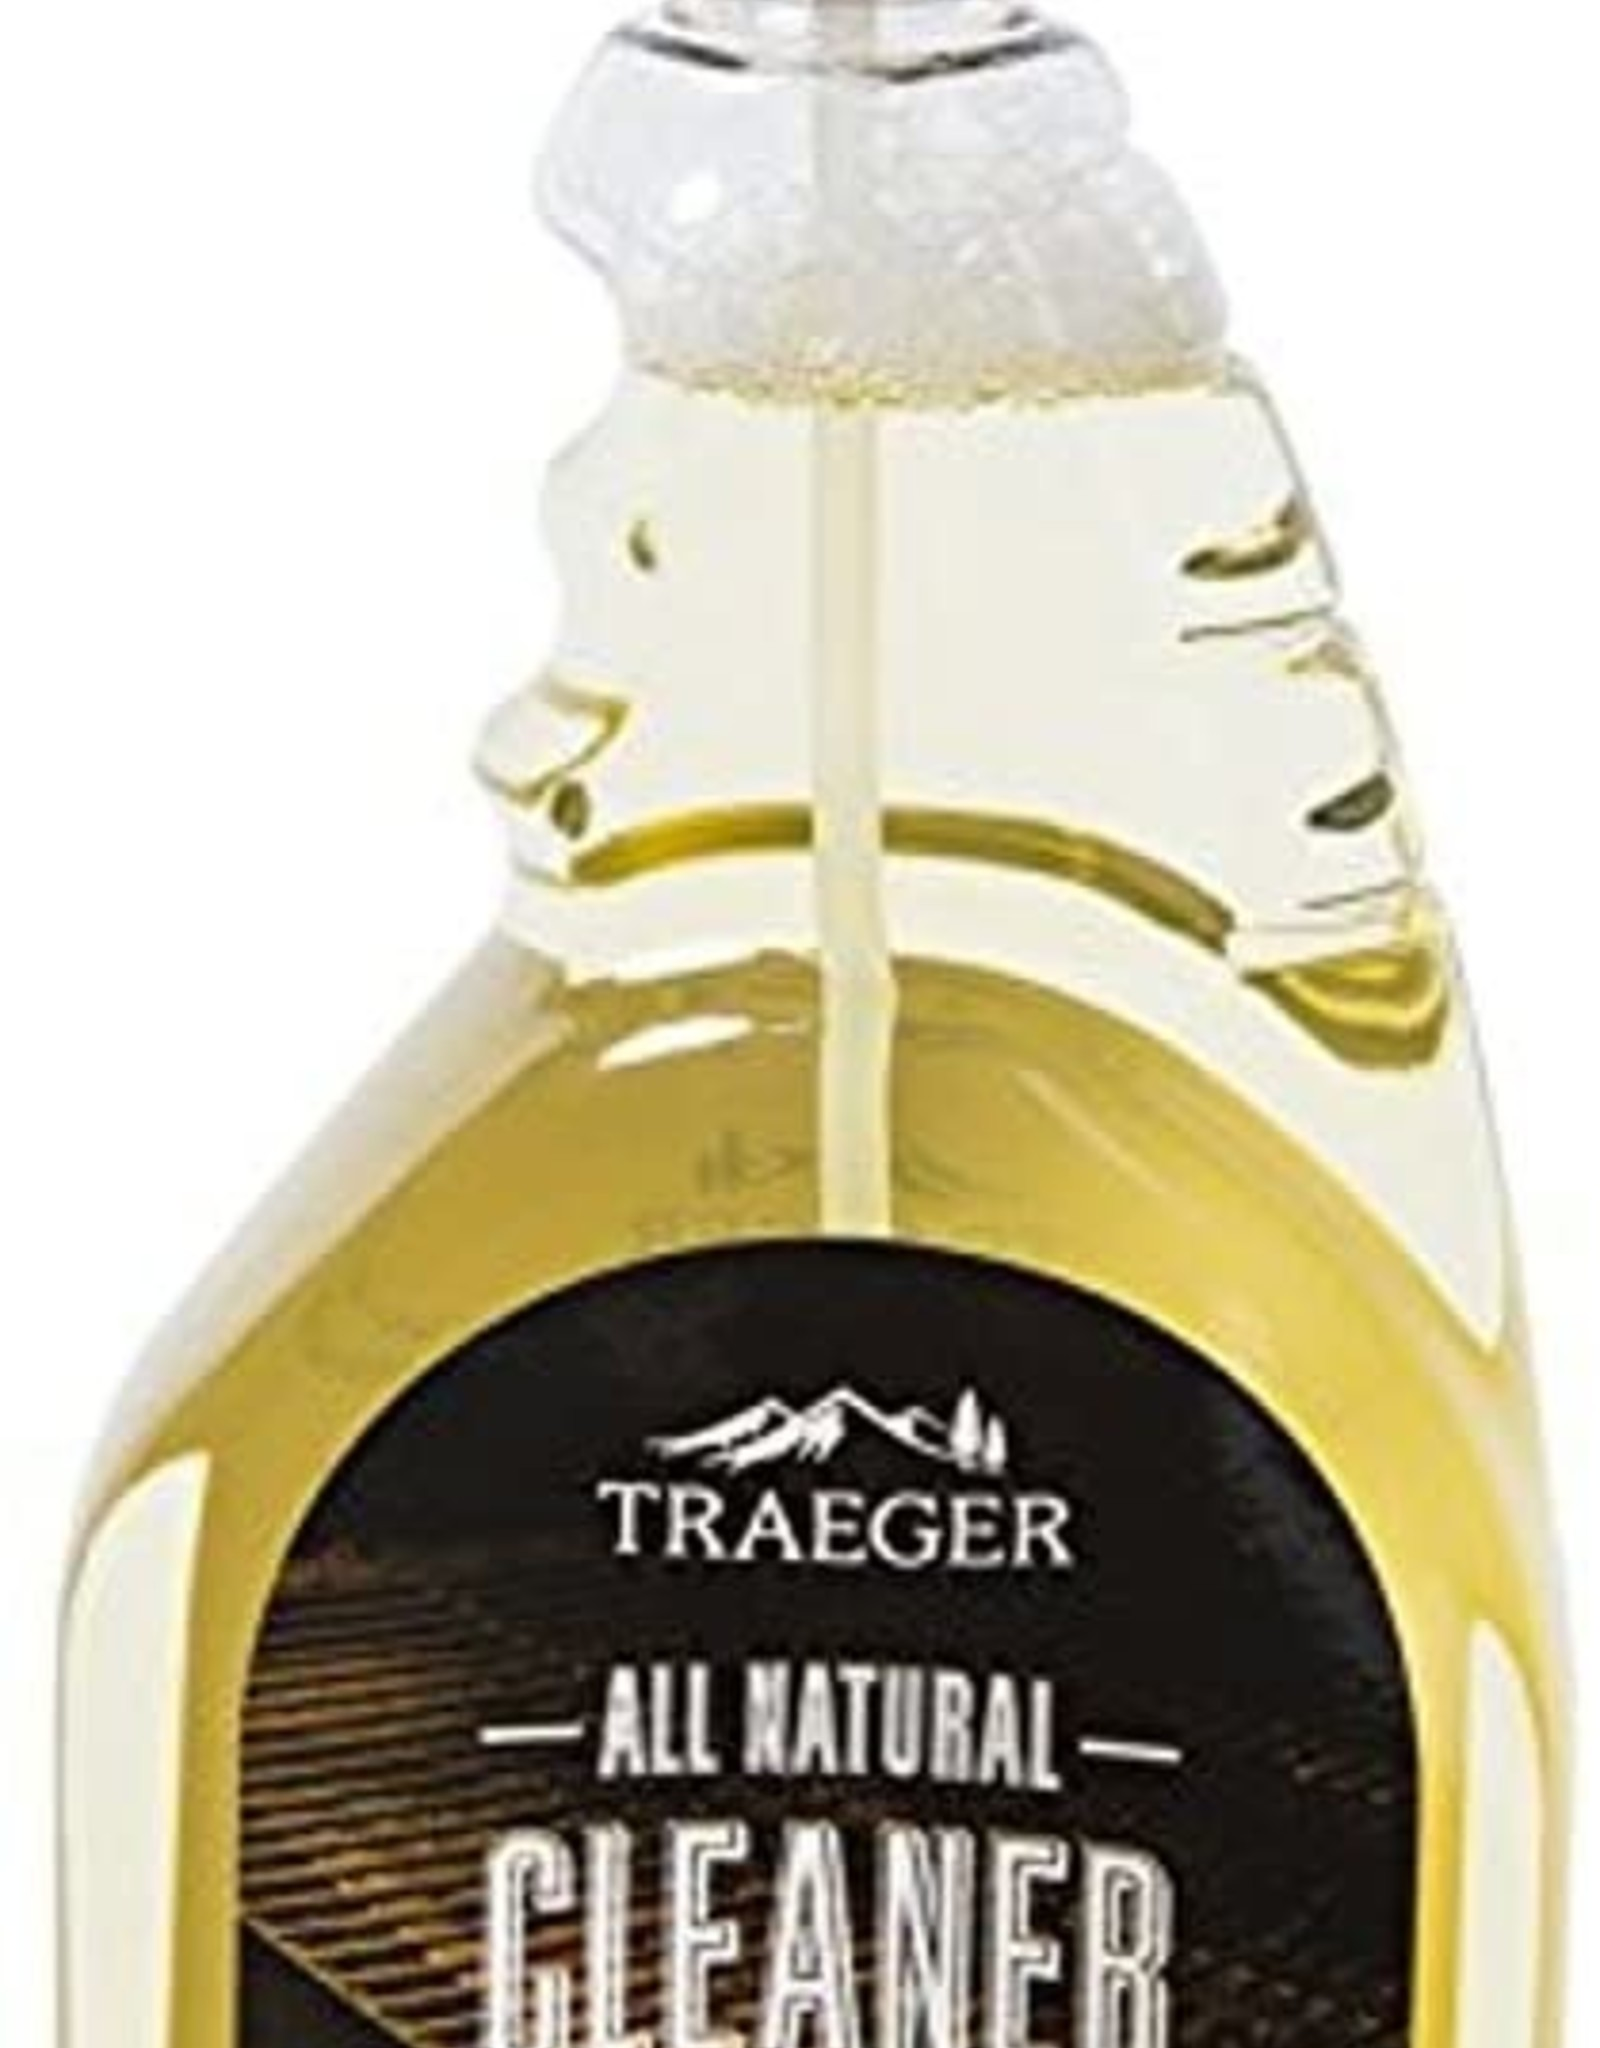 Traeger Traeger All Natural Cleaner - BAC403